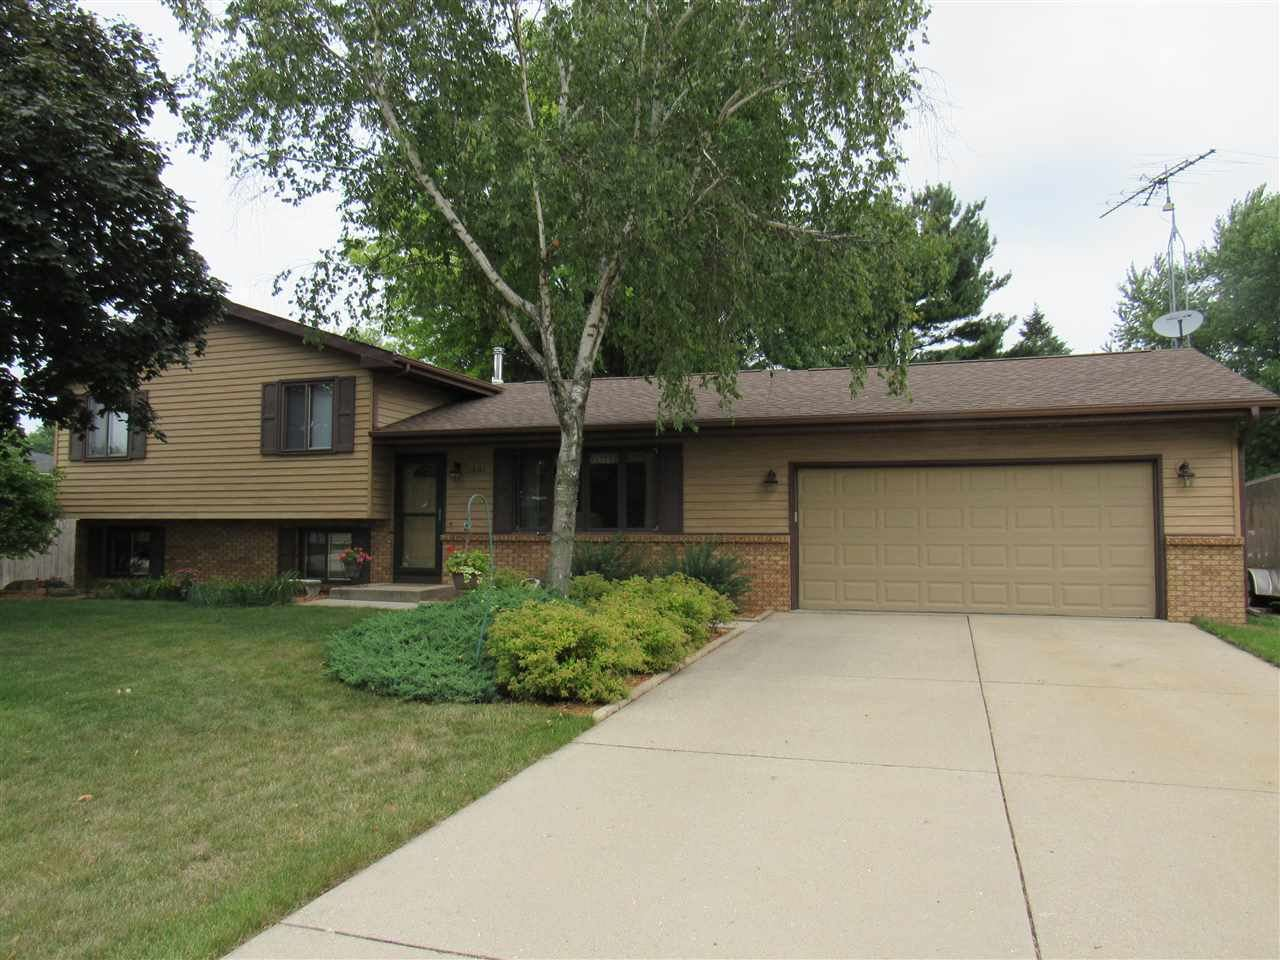 2401 Browning Dr, Janesville, WI 53546 - #: 1915802